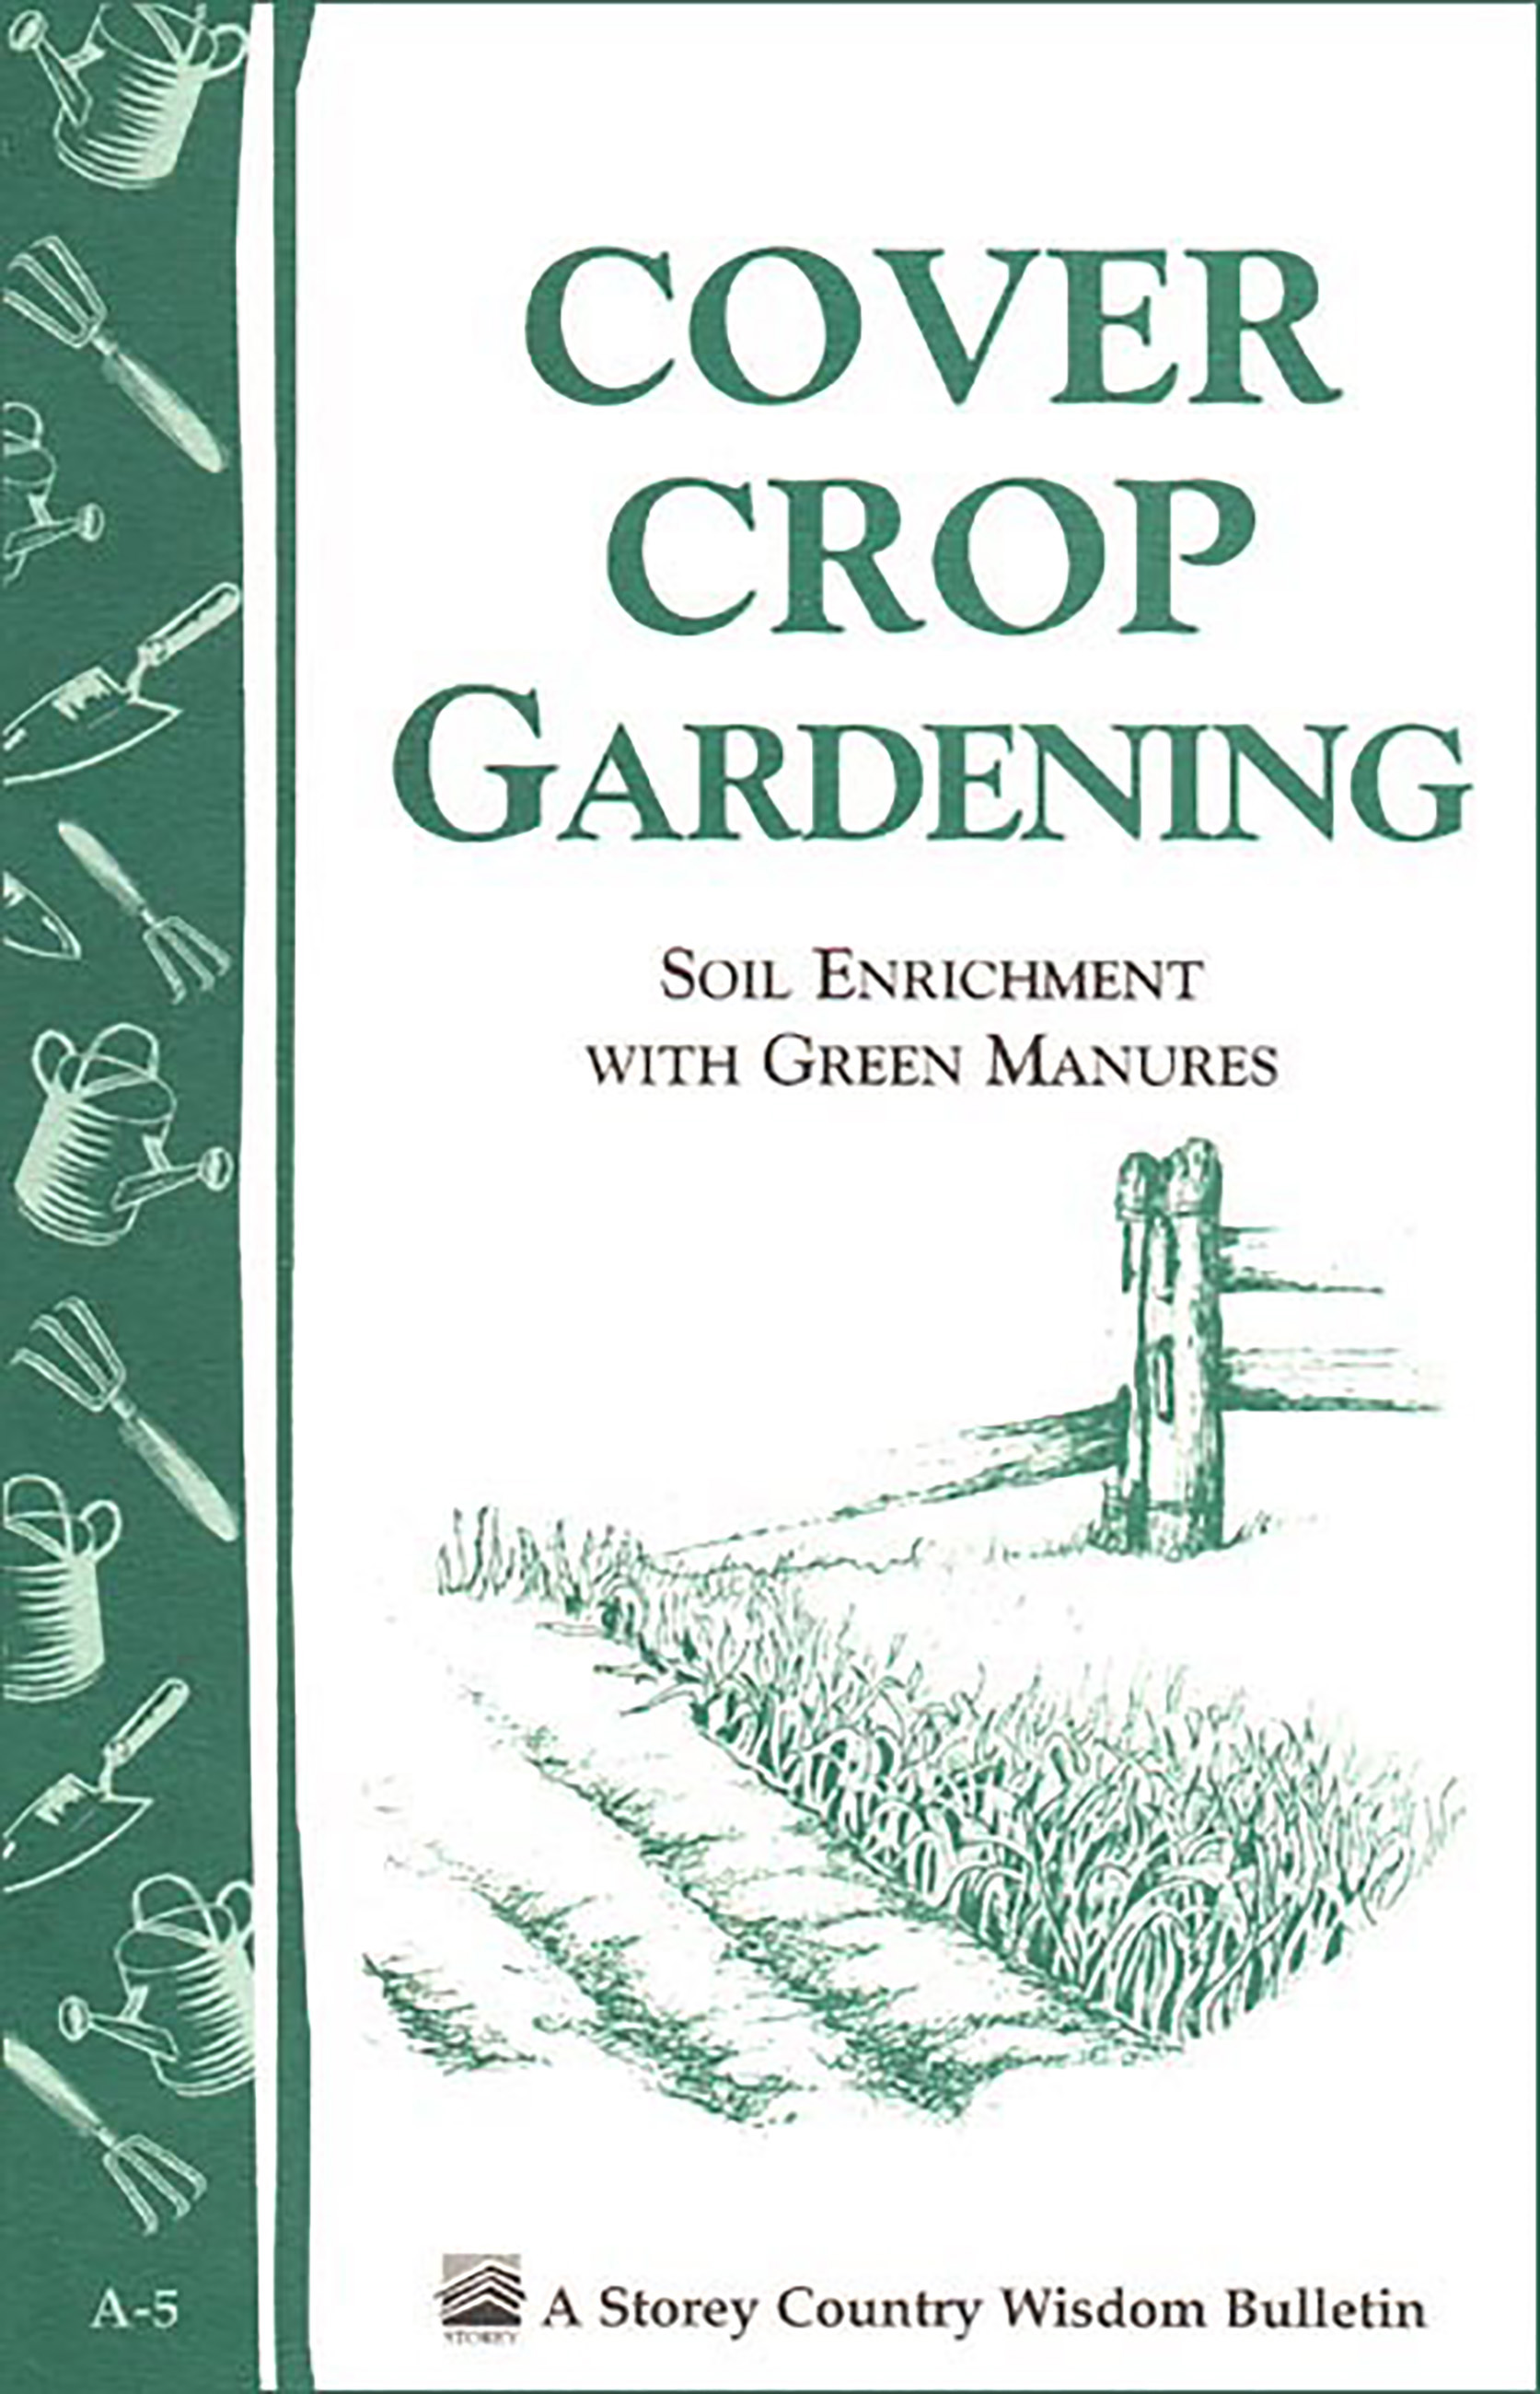 Cover Crop Gardening Soil Enrichment With Green Manures/ Storey's Country Wisdom Bulletin A-05